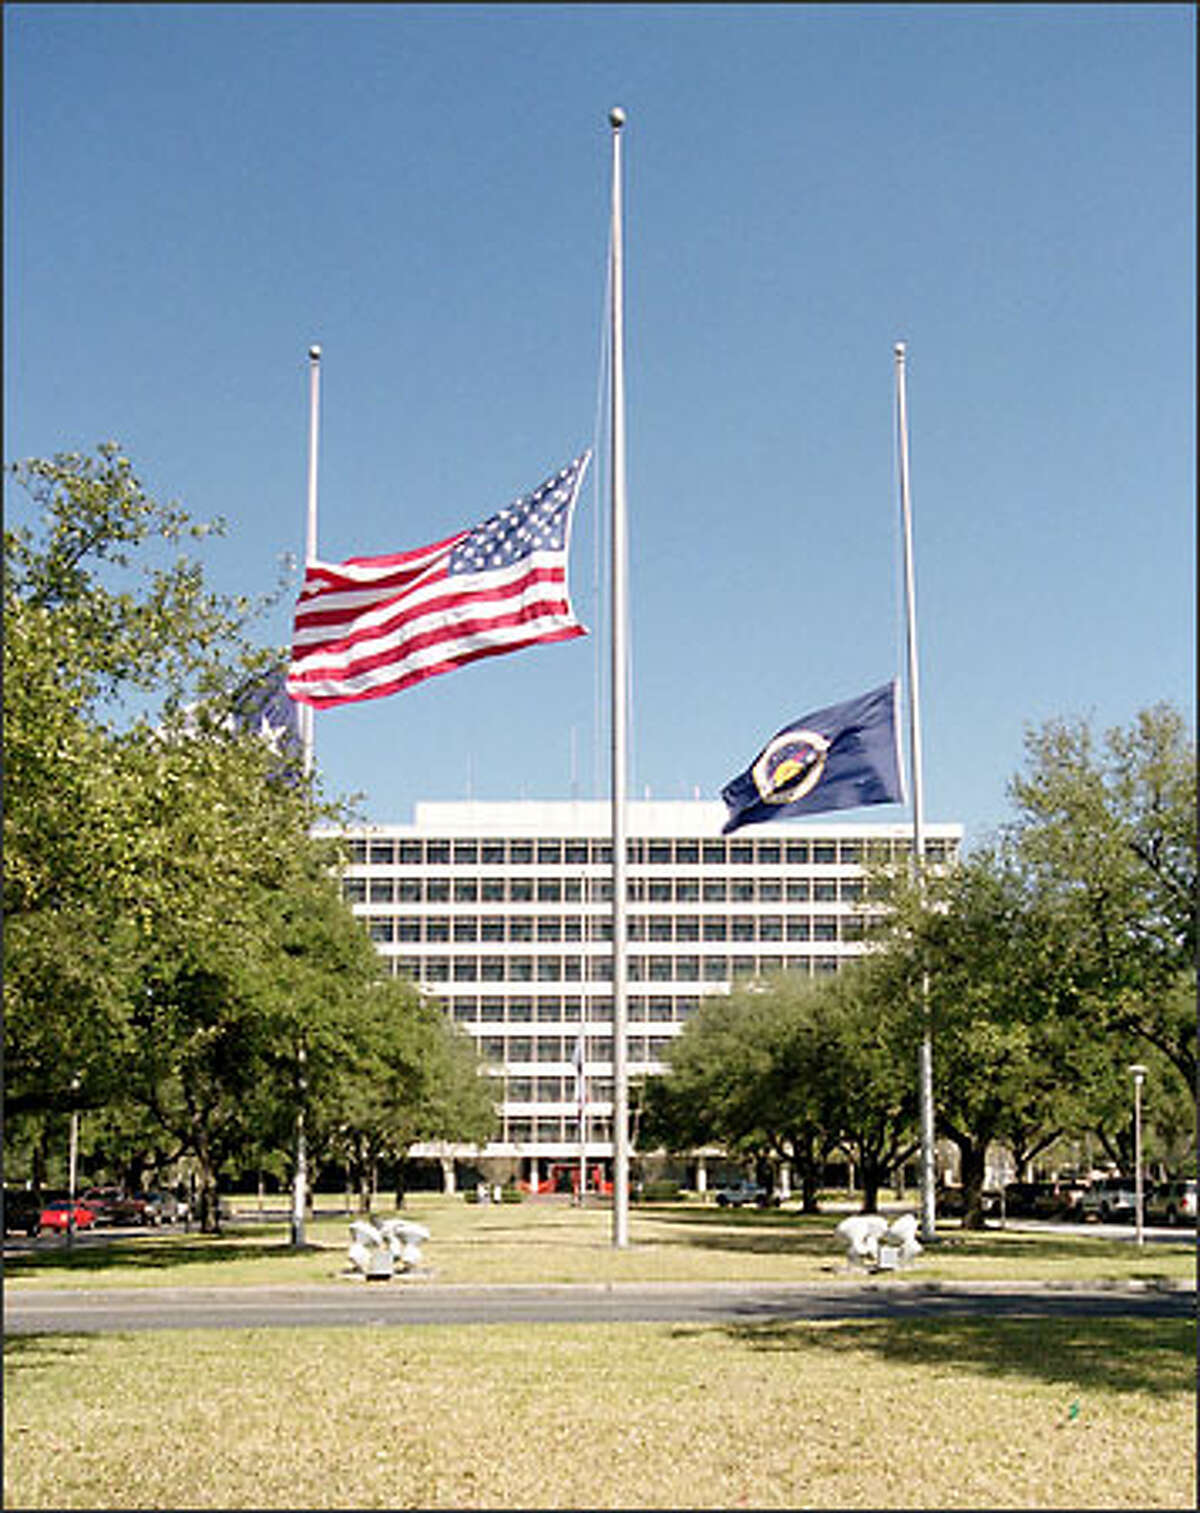 Flags fly at half mast in front of the administration building at the Johnson Space Center in honor of the crew of the Columbia space shuttle.